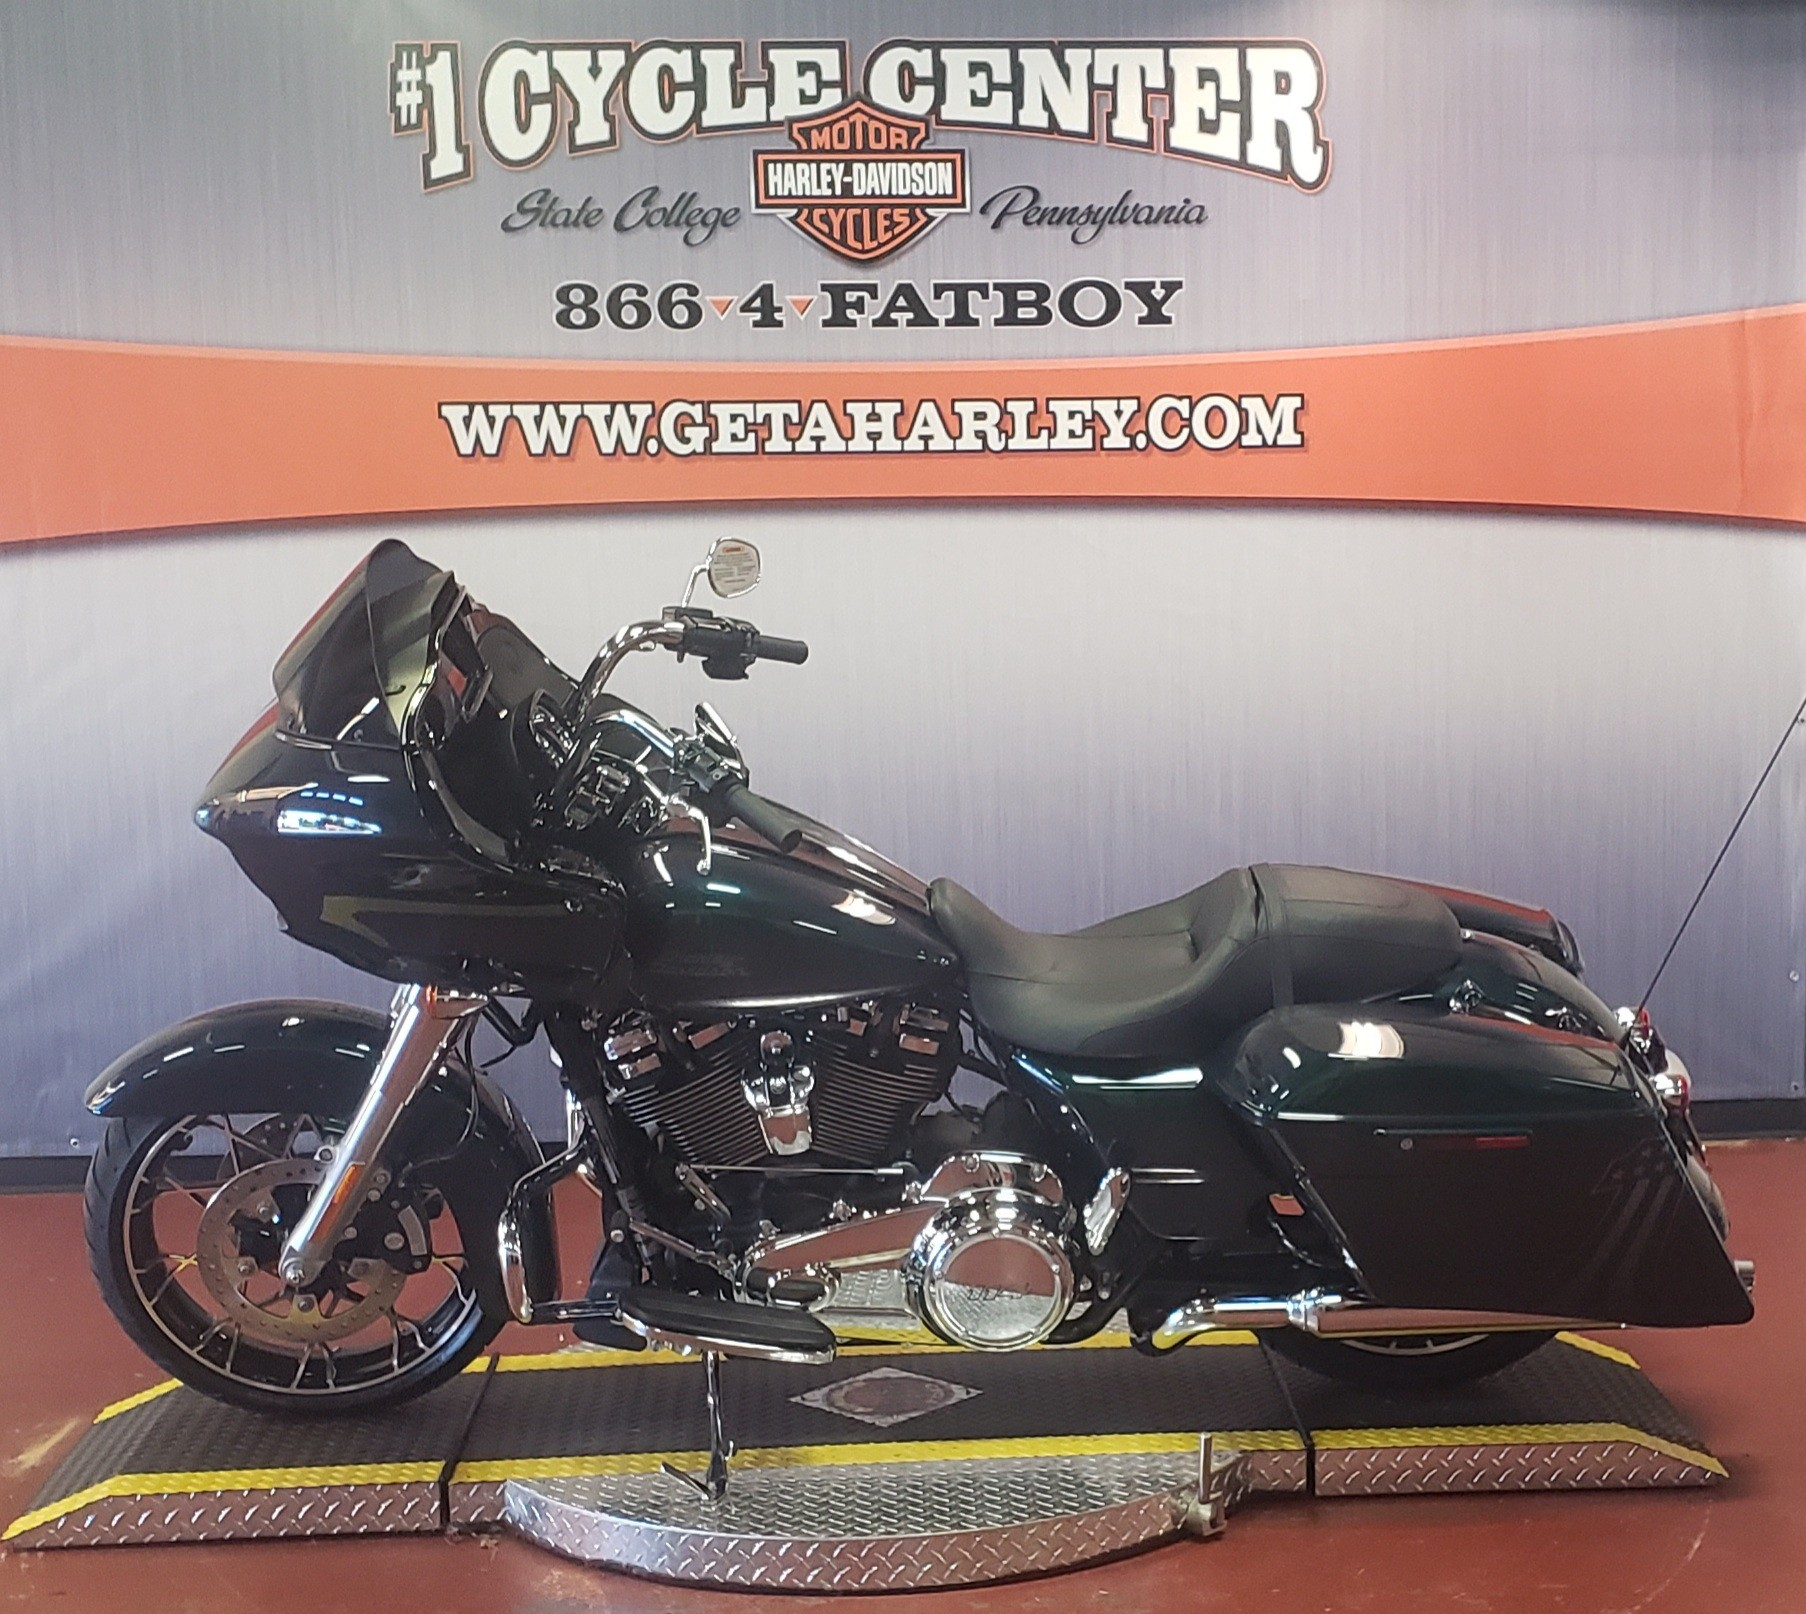 2021 Harley-Davidson Grand American Touring Road Glide Special at #1 Cycle Center Harley-Davidson